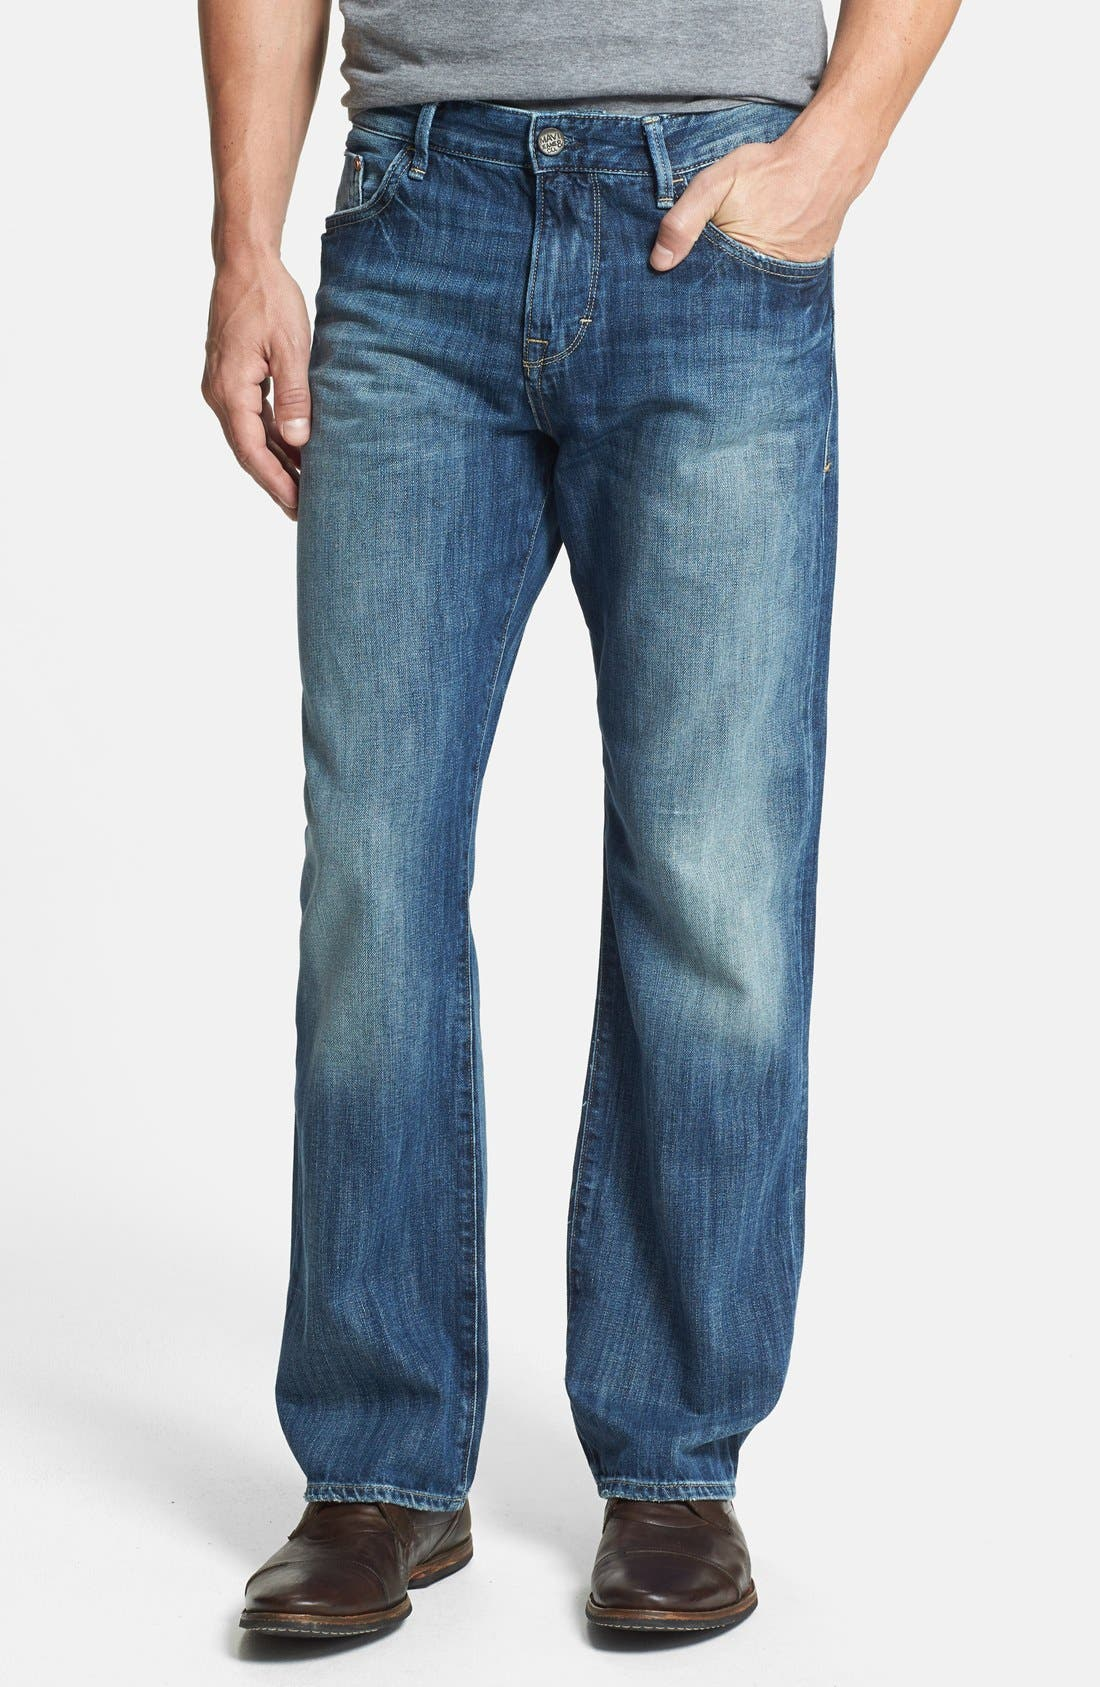 Alternate Image 1 Selected - Mavi Jeans 'Matt' Relaxed Straight Leg Jeans (Indigo Blue) (Online Only)